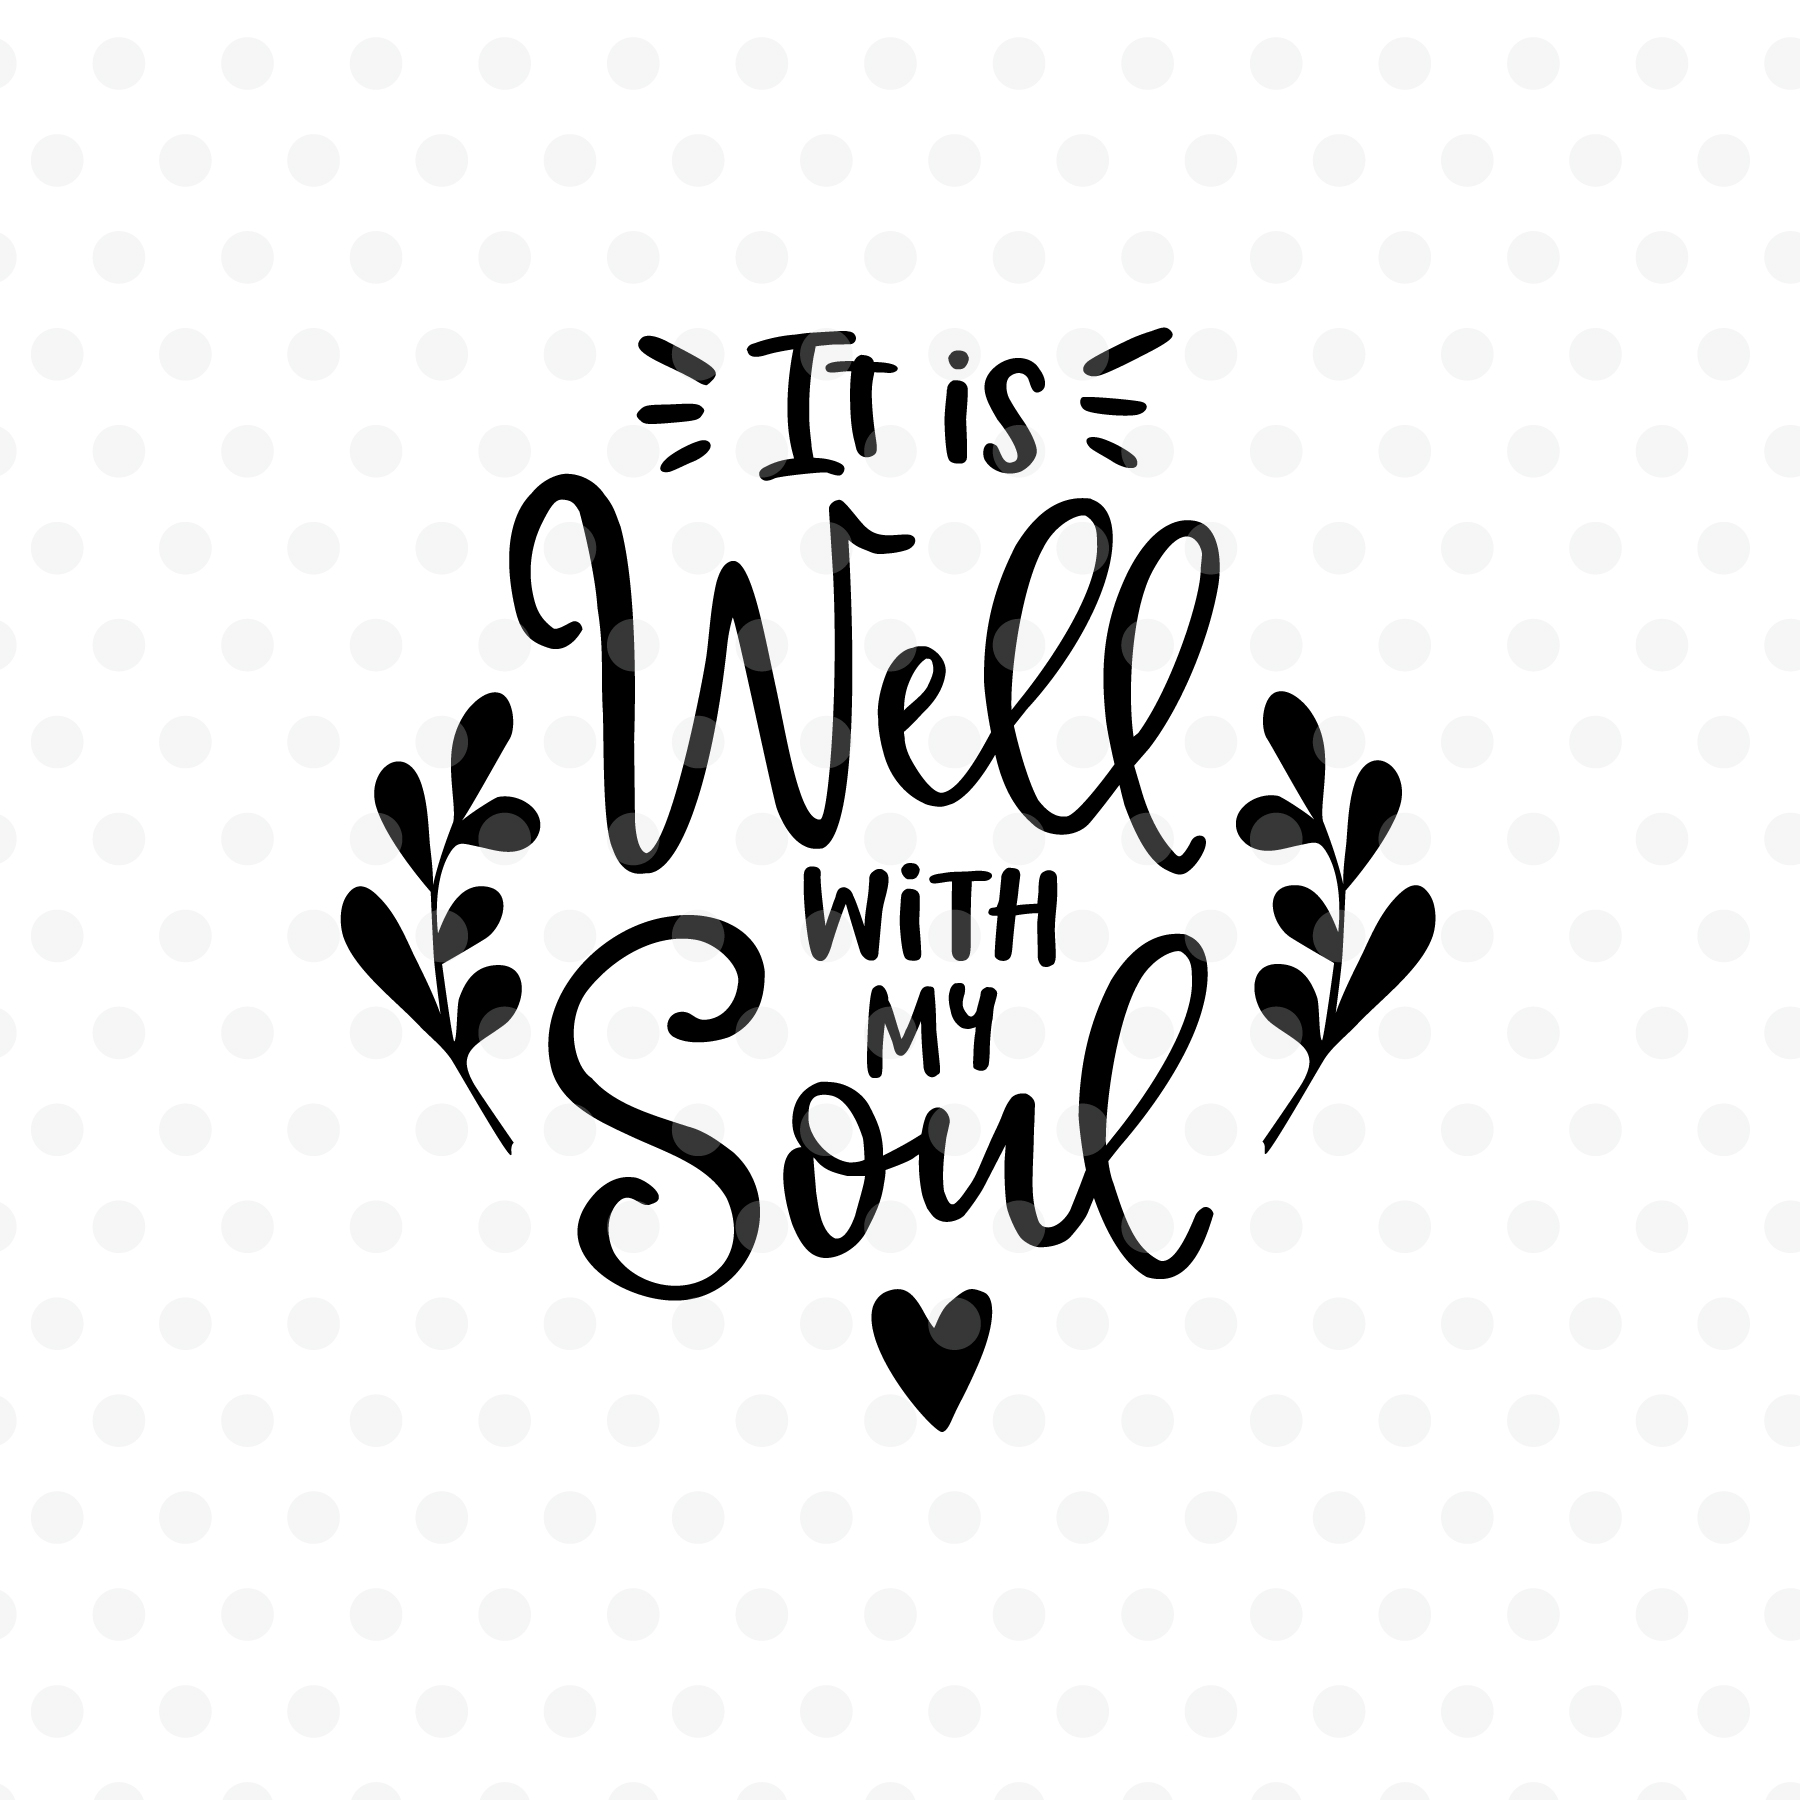 It is well with my soul SVG, EPS, PNG, DXF.